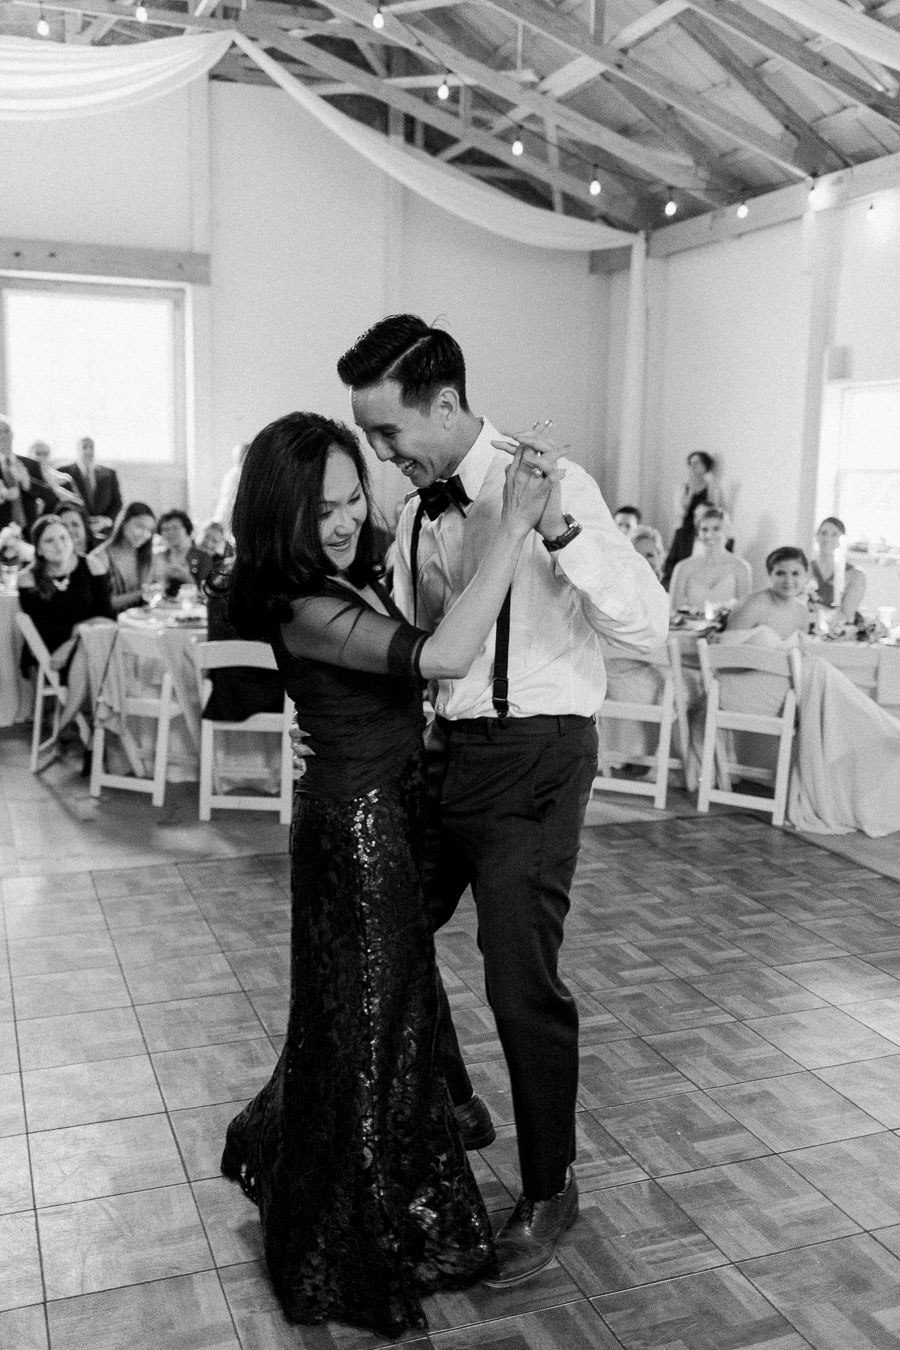 mother-son-wedding-dance-super-cute